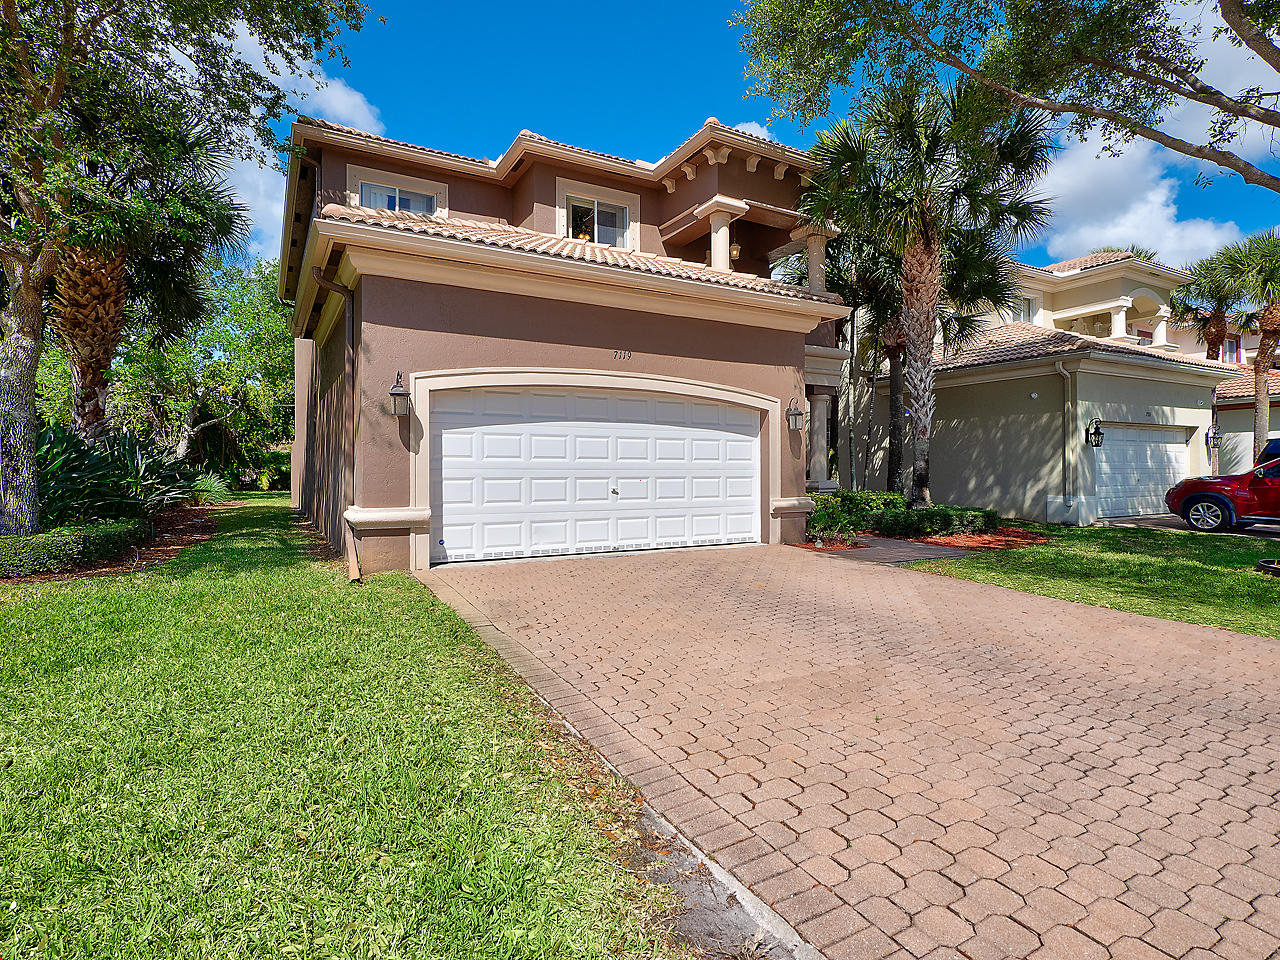 Home for sale in Palmyra Estates Boynton Beach Florida